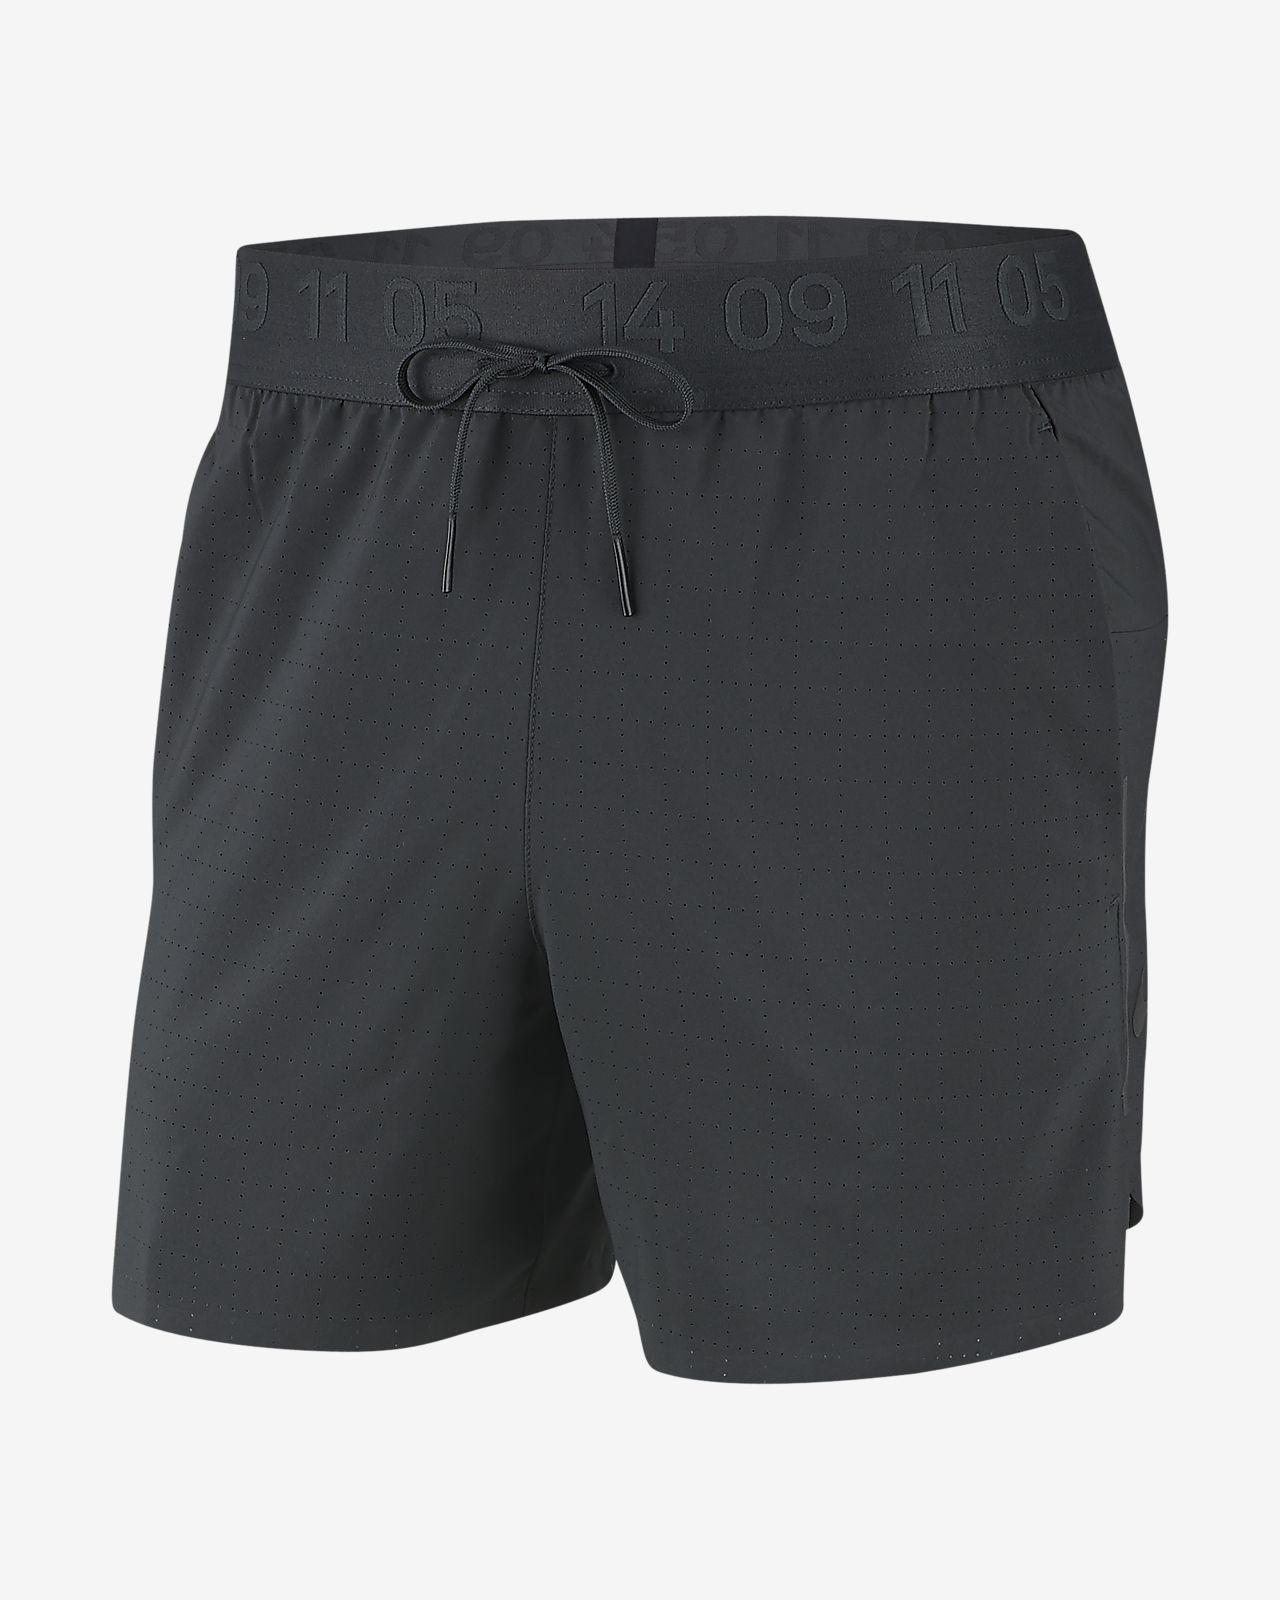 Nike Tech Pack Men's Running Shorts